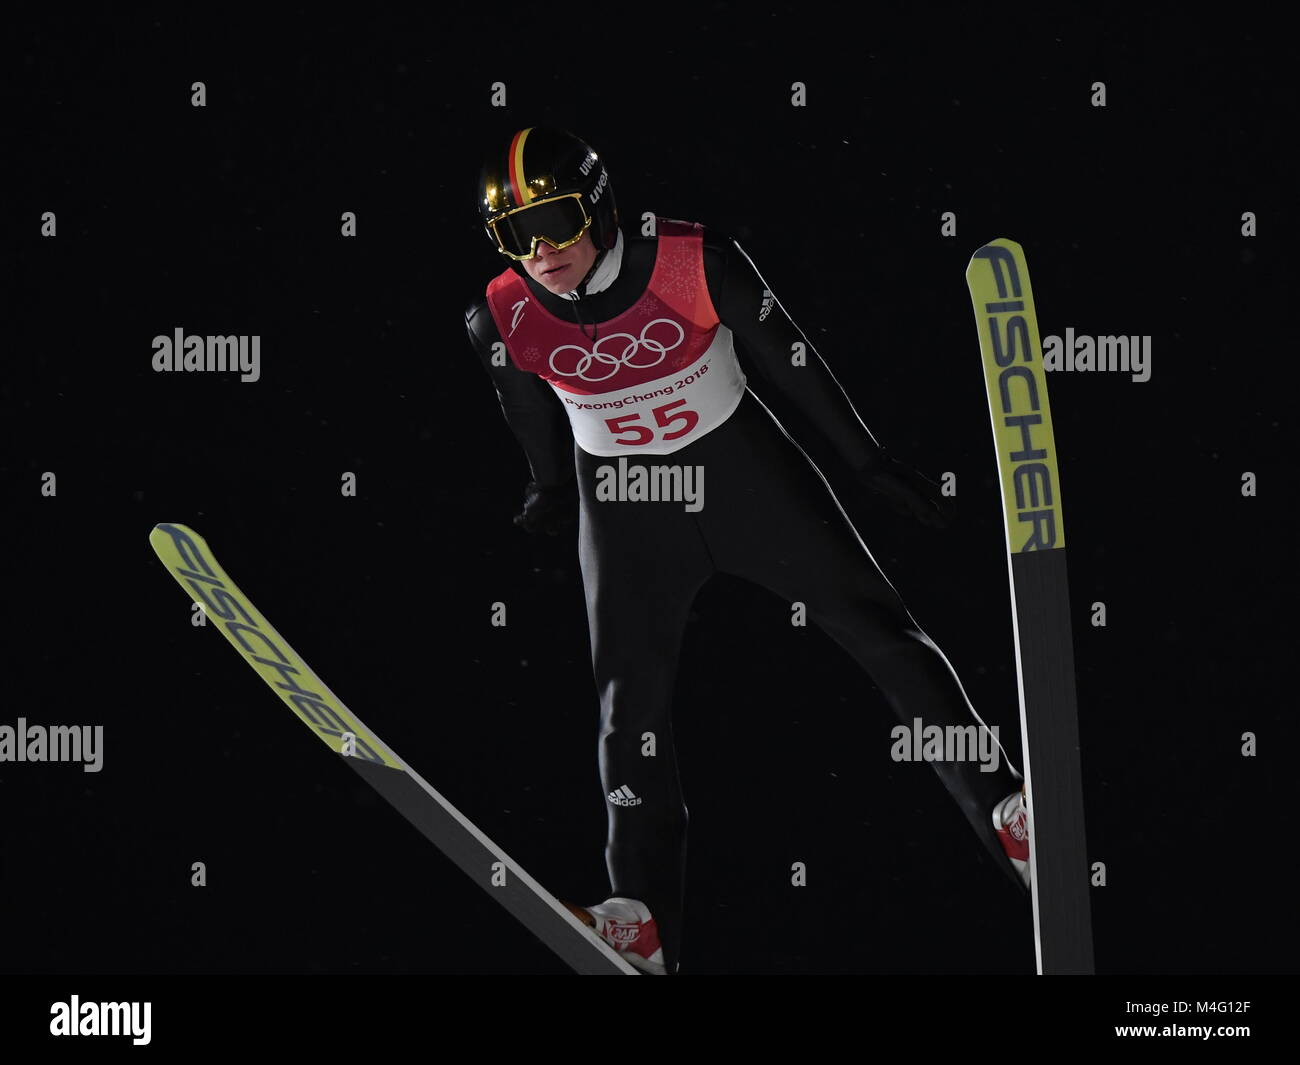 Pyeongchang, South Korea. 16th Feb, 2018. Andreas Wellinger from Germany during ski jumping training in the Alpensia - Stock Image